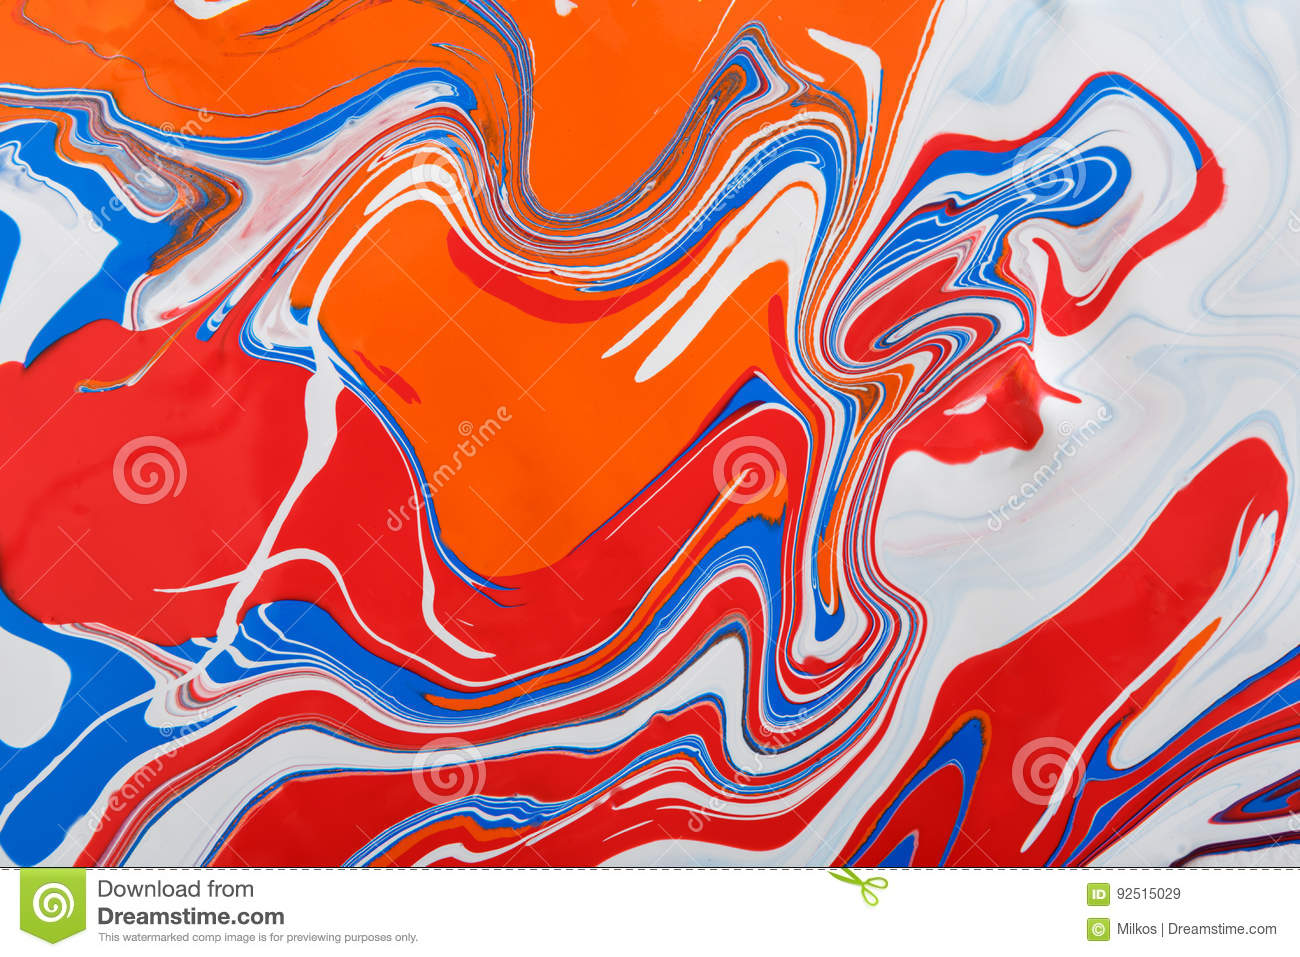 Liquid marbling acrylic paint background. Fluid painting abstract texture